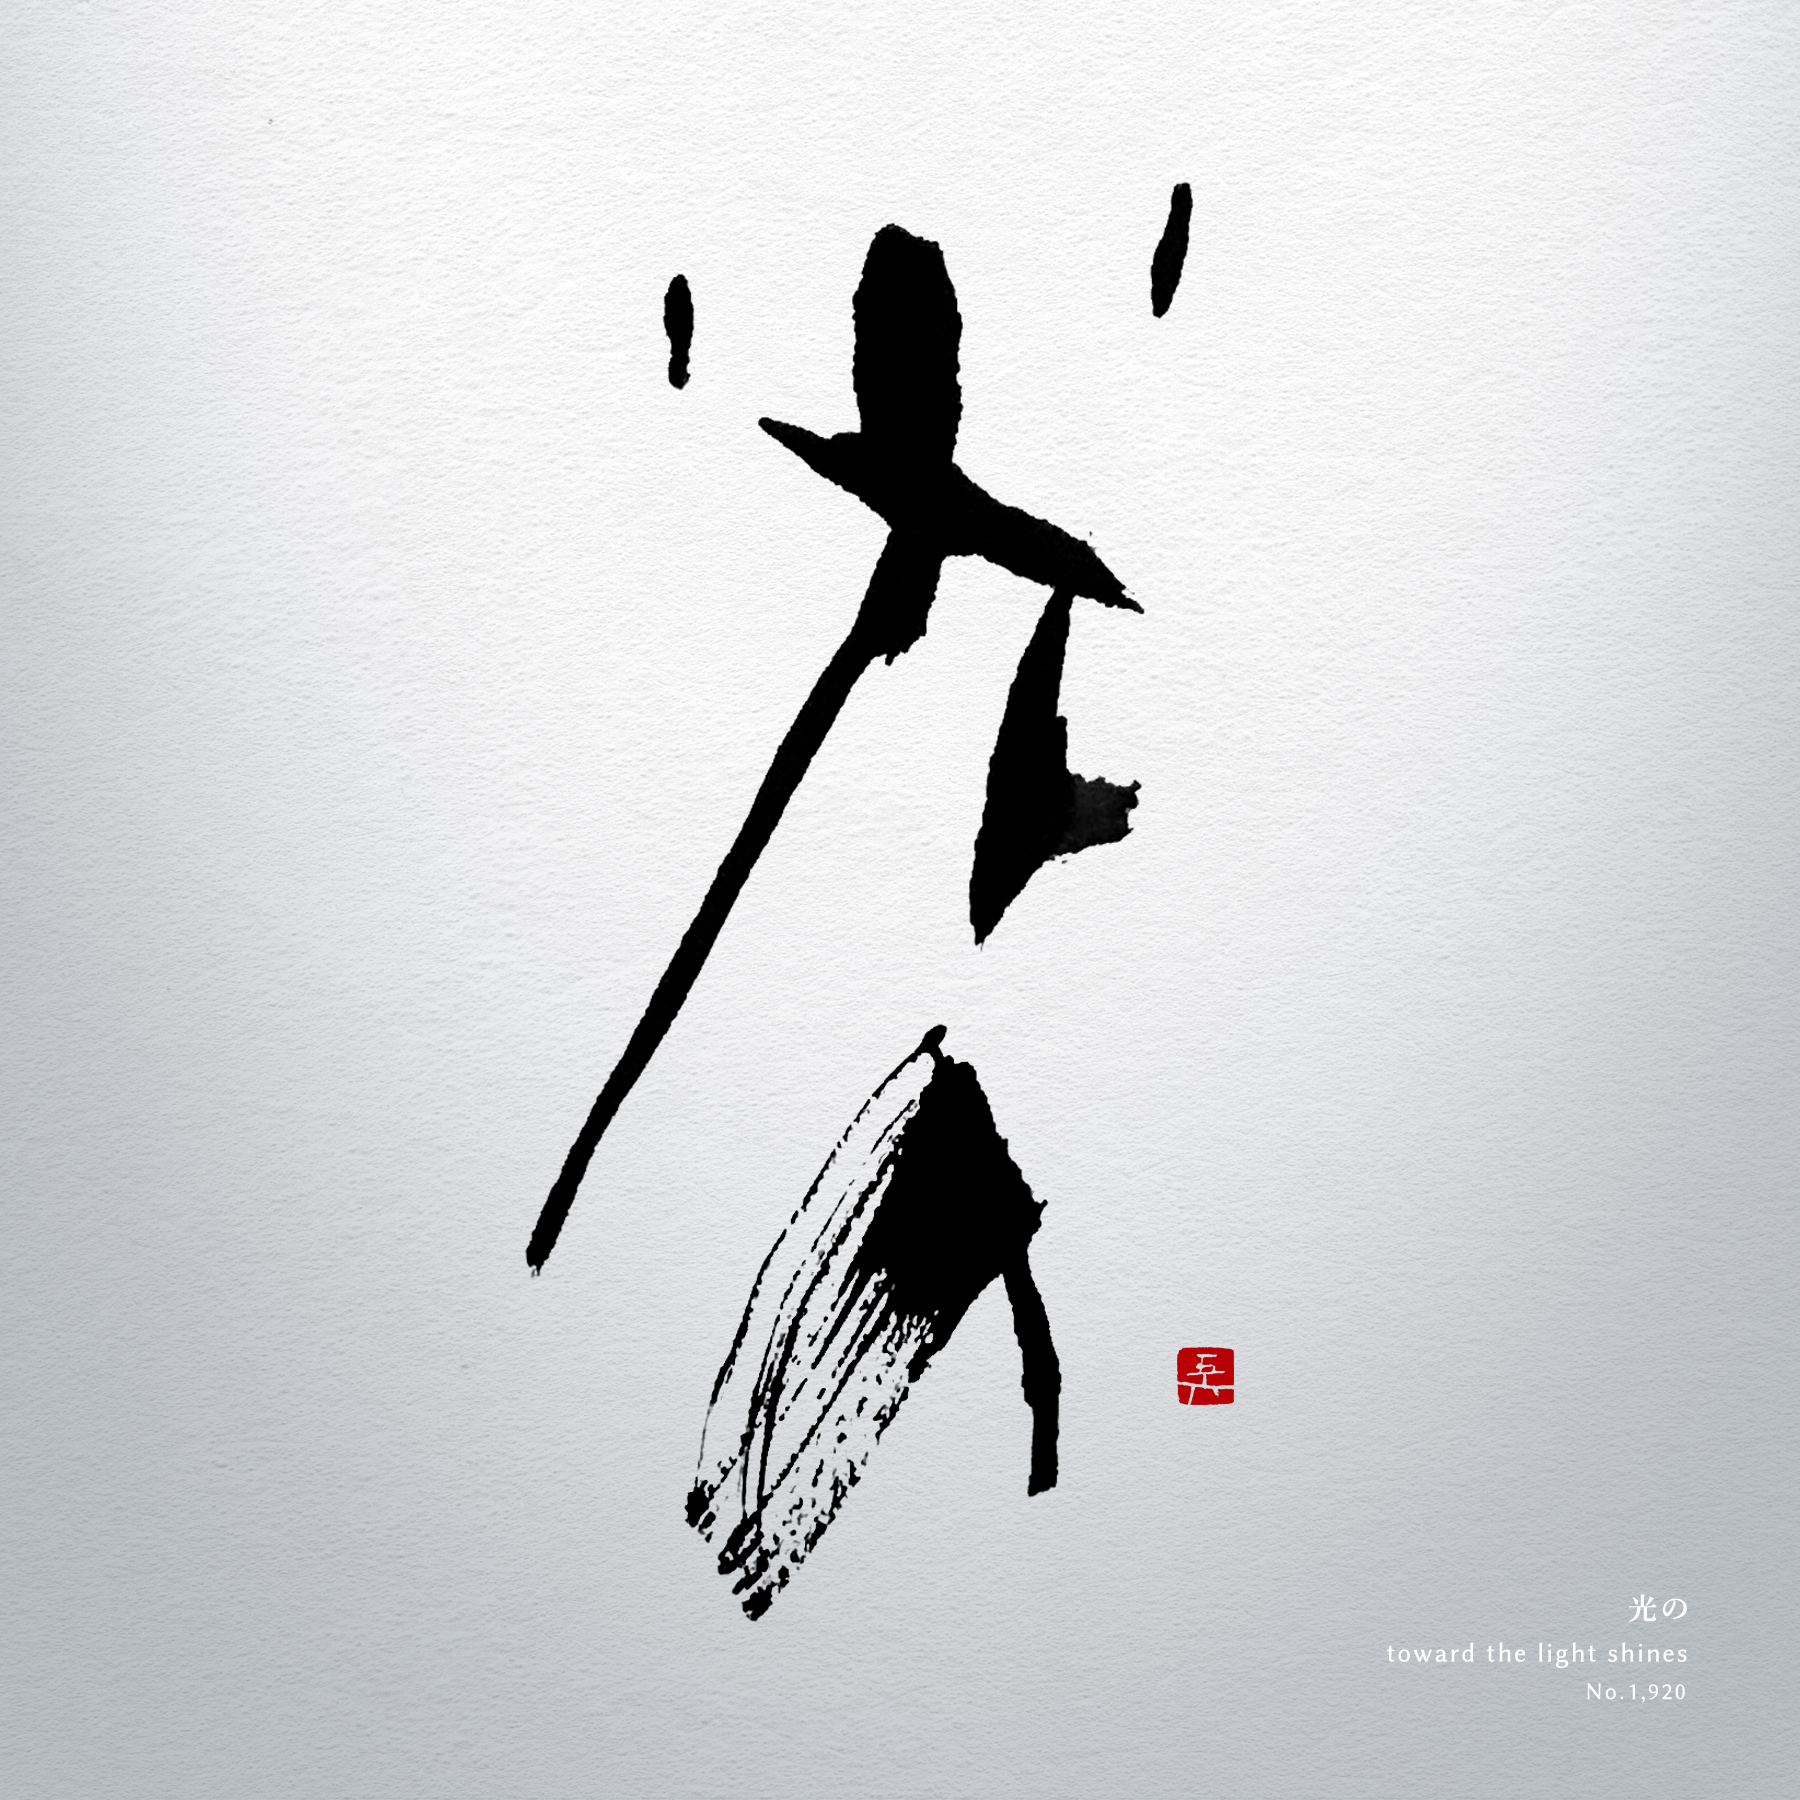 光の | toward the light shines 書道作品 japaneseart japanese calligraphy 書家 田川悟郎 Goroh Tagawa